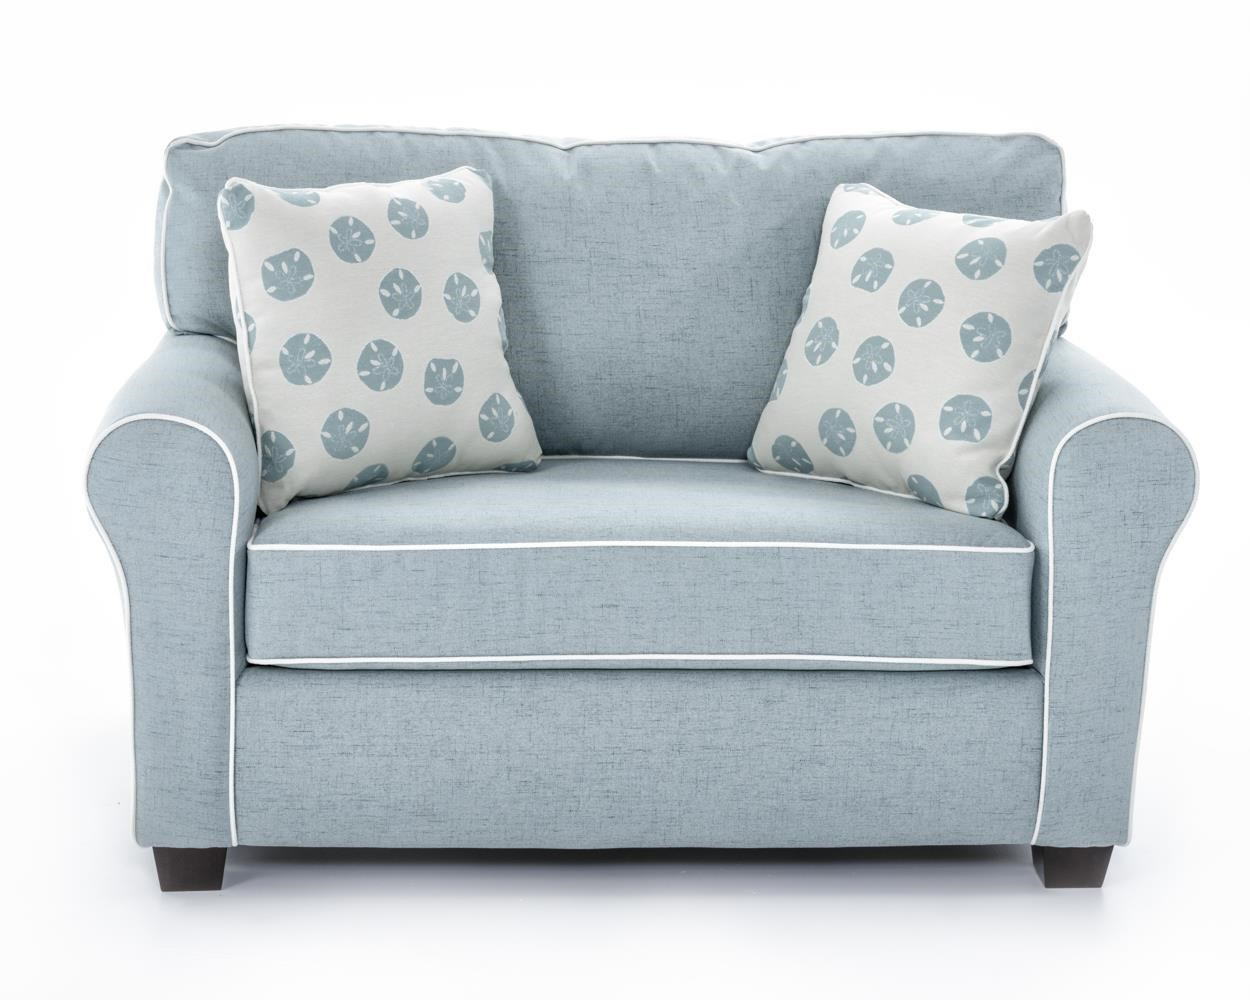 Twin Sofa Bed Review Home Decor